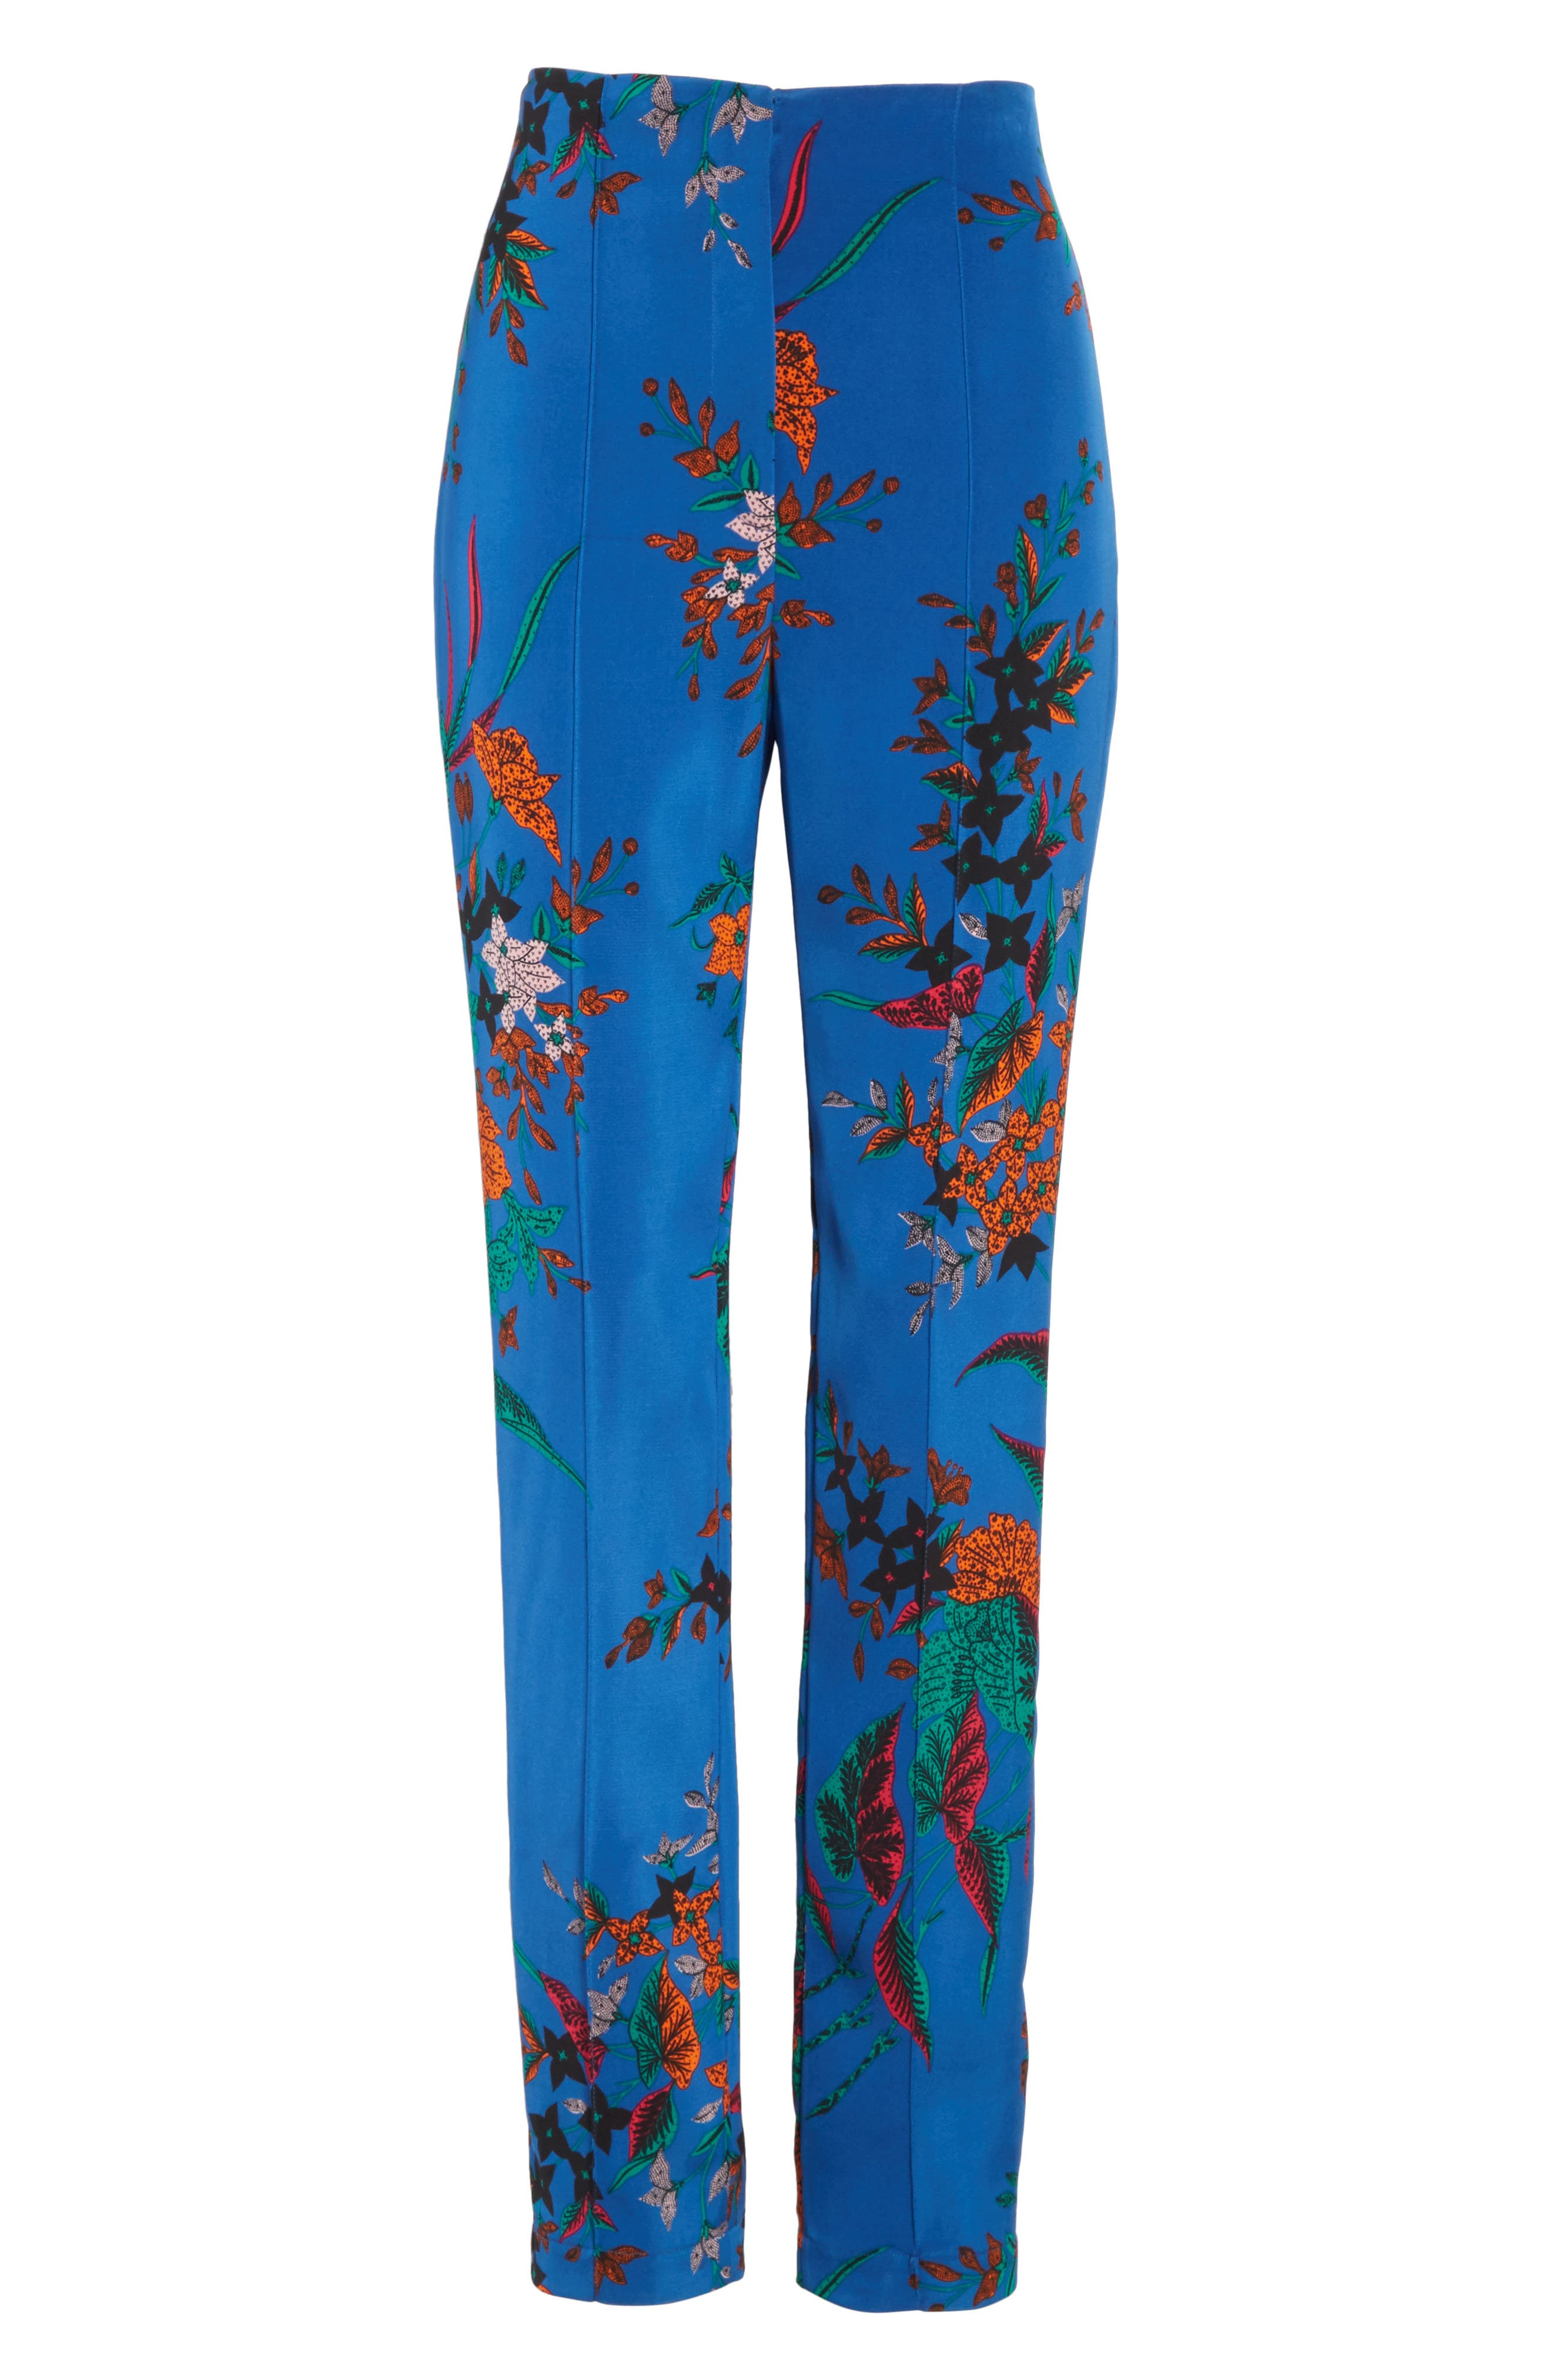 High Waist Print Skinny Pants,                             Alternate thumbnail 6, color,                             Camden Cove